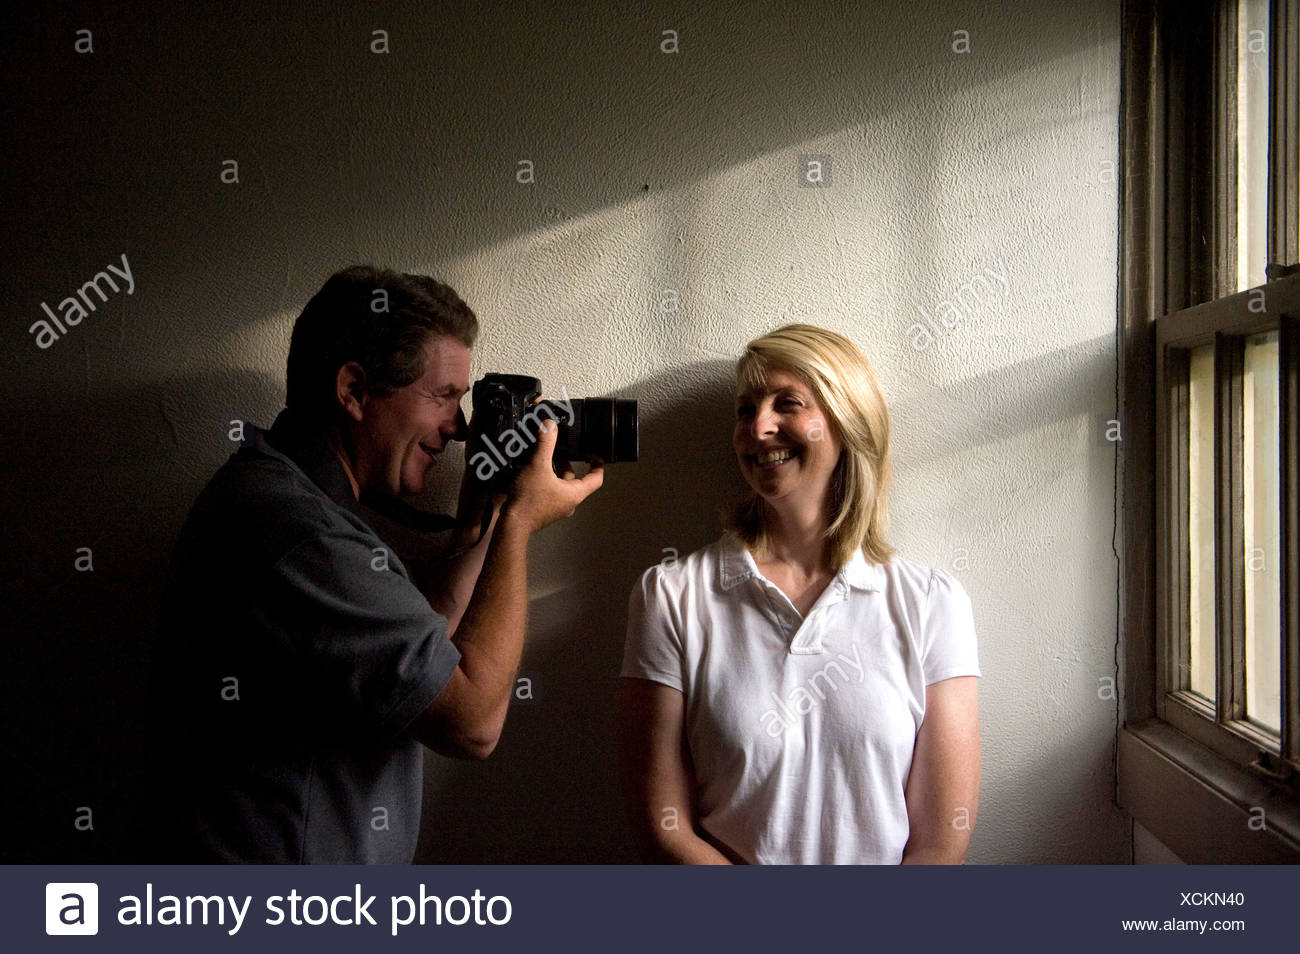 A husband photographs his wife while she laughs. - Stock Image